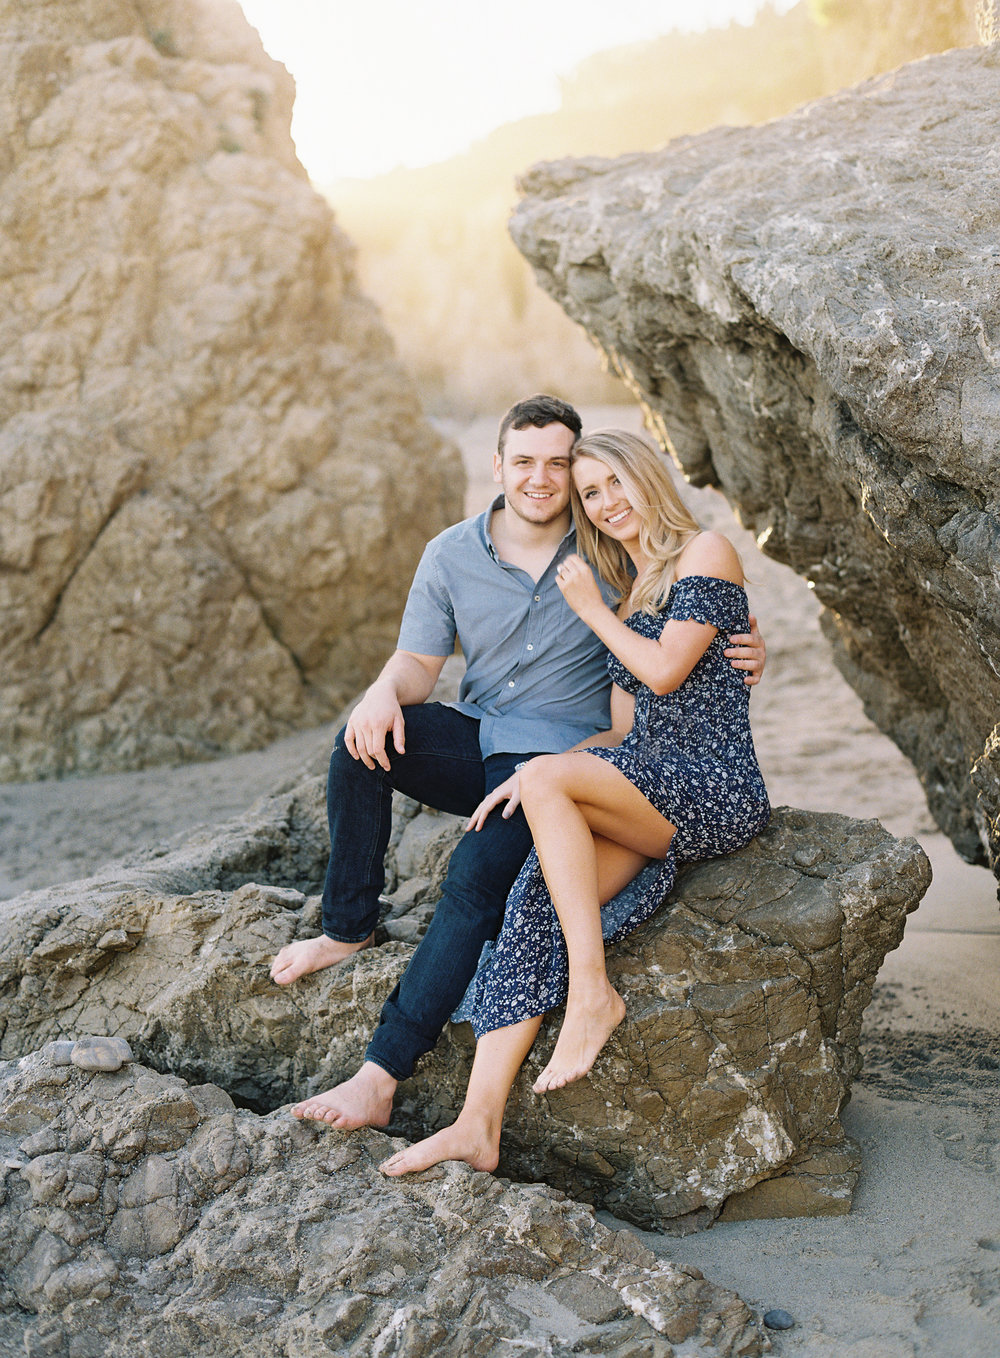 Taylor & Casey's Malibu Engagement-Carrie King Photographer-054.jpg